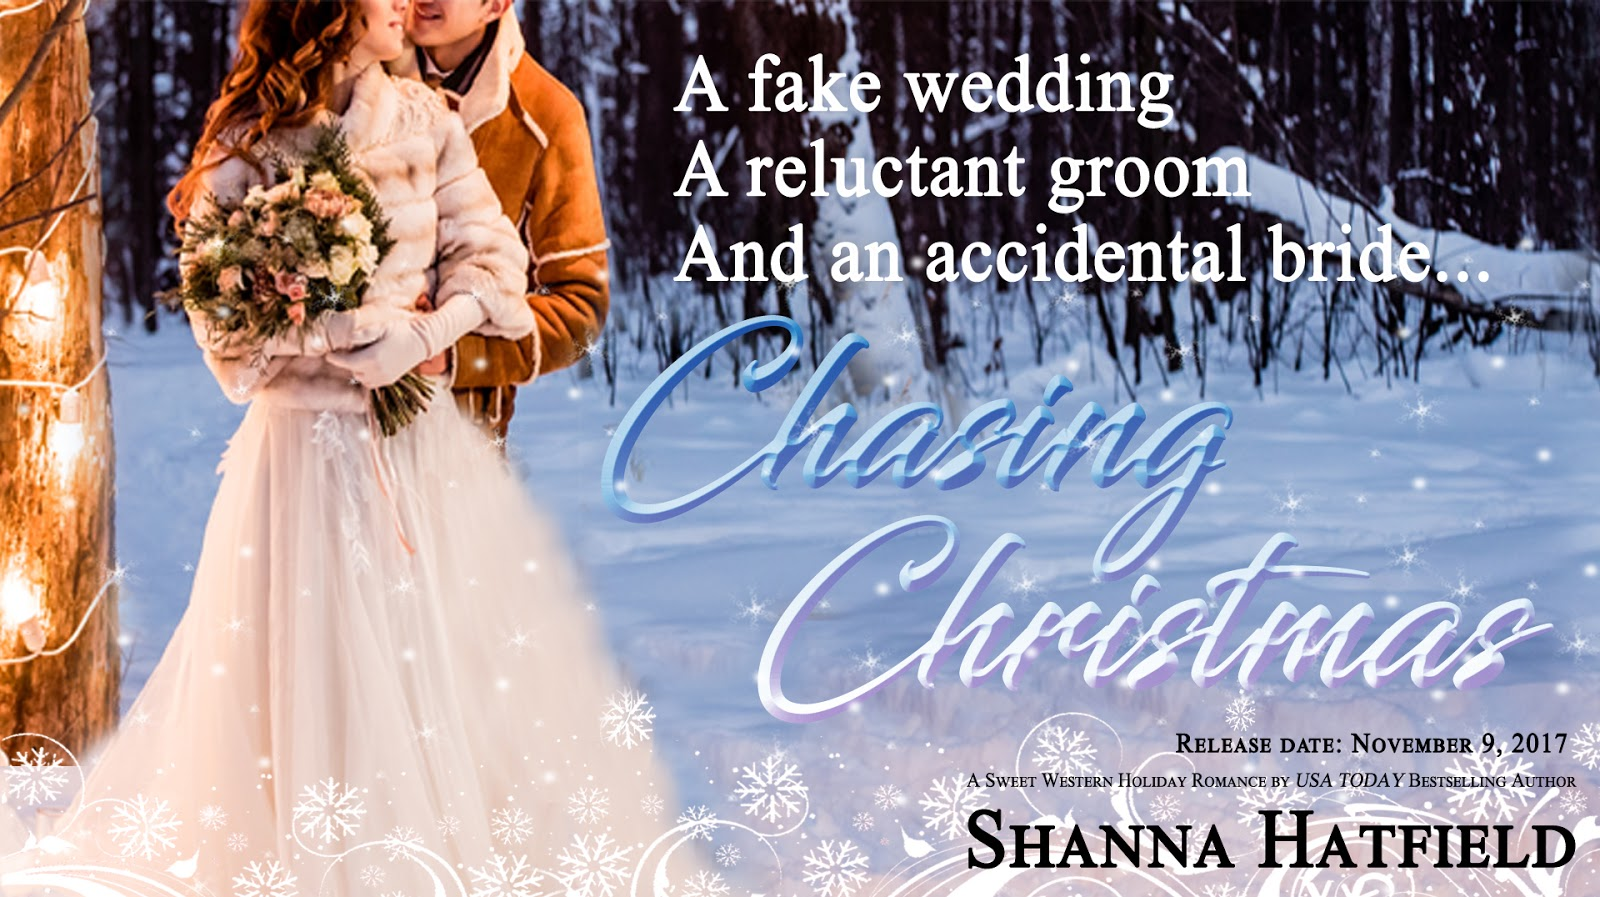 Chasing Christmas.Denise Devine S Book Diary Chasing Christmas By Shanna Hatfield